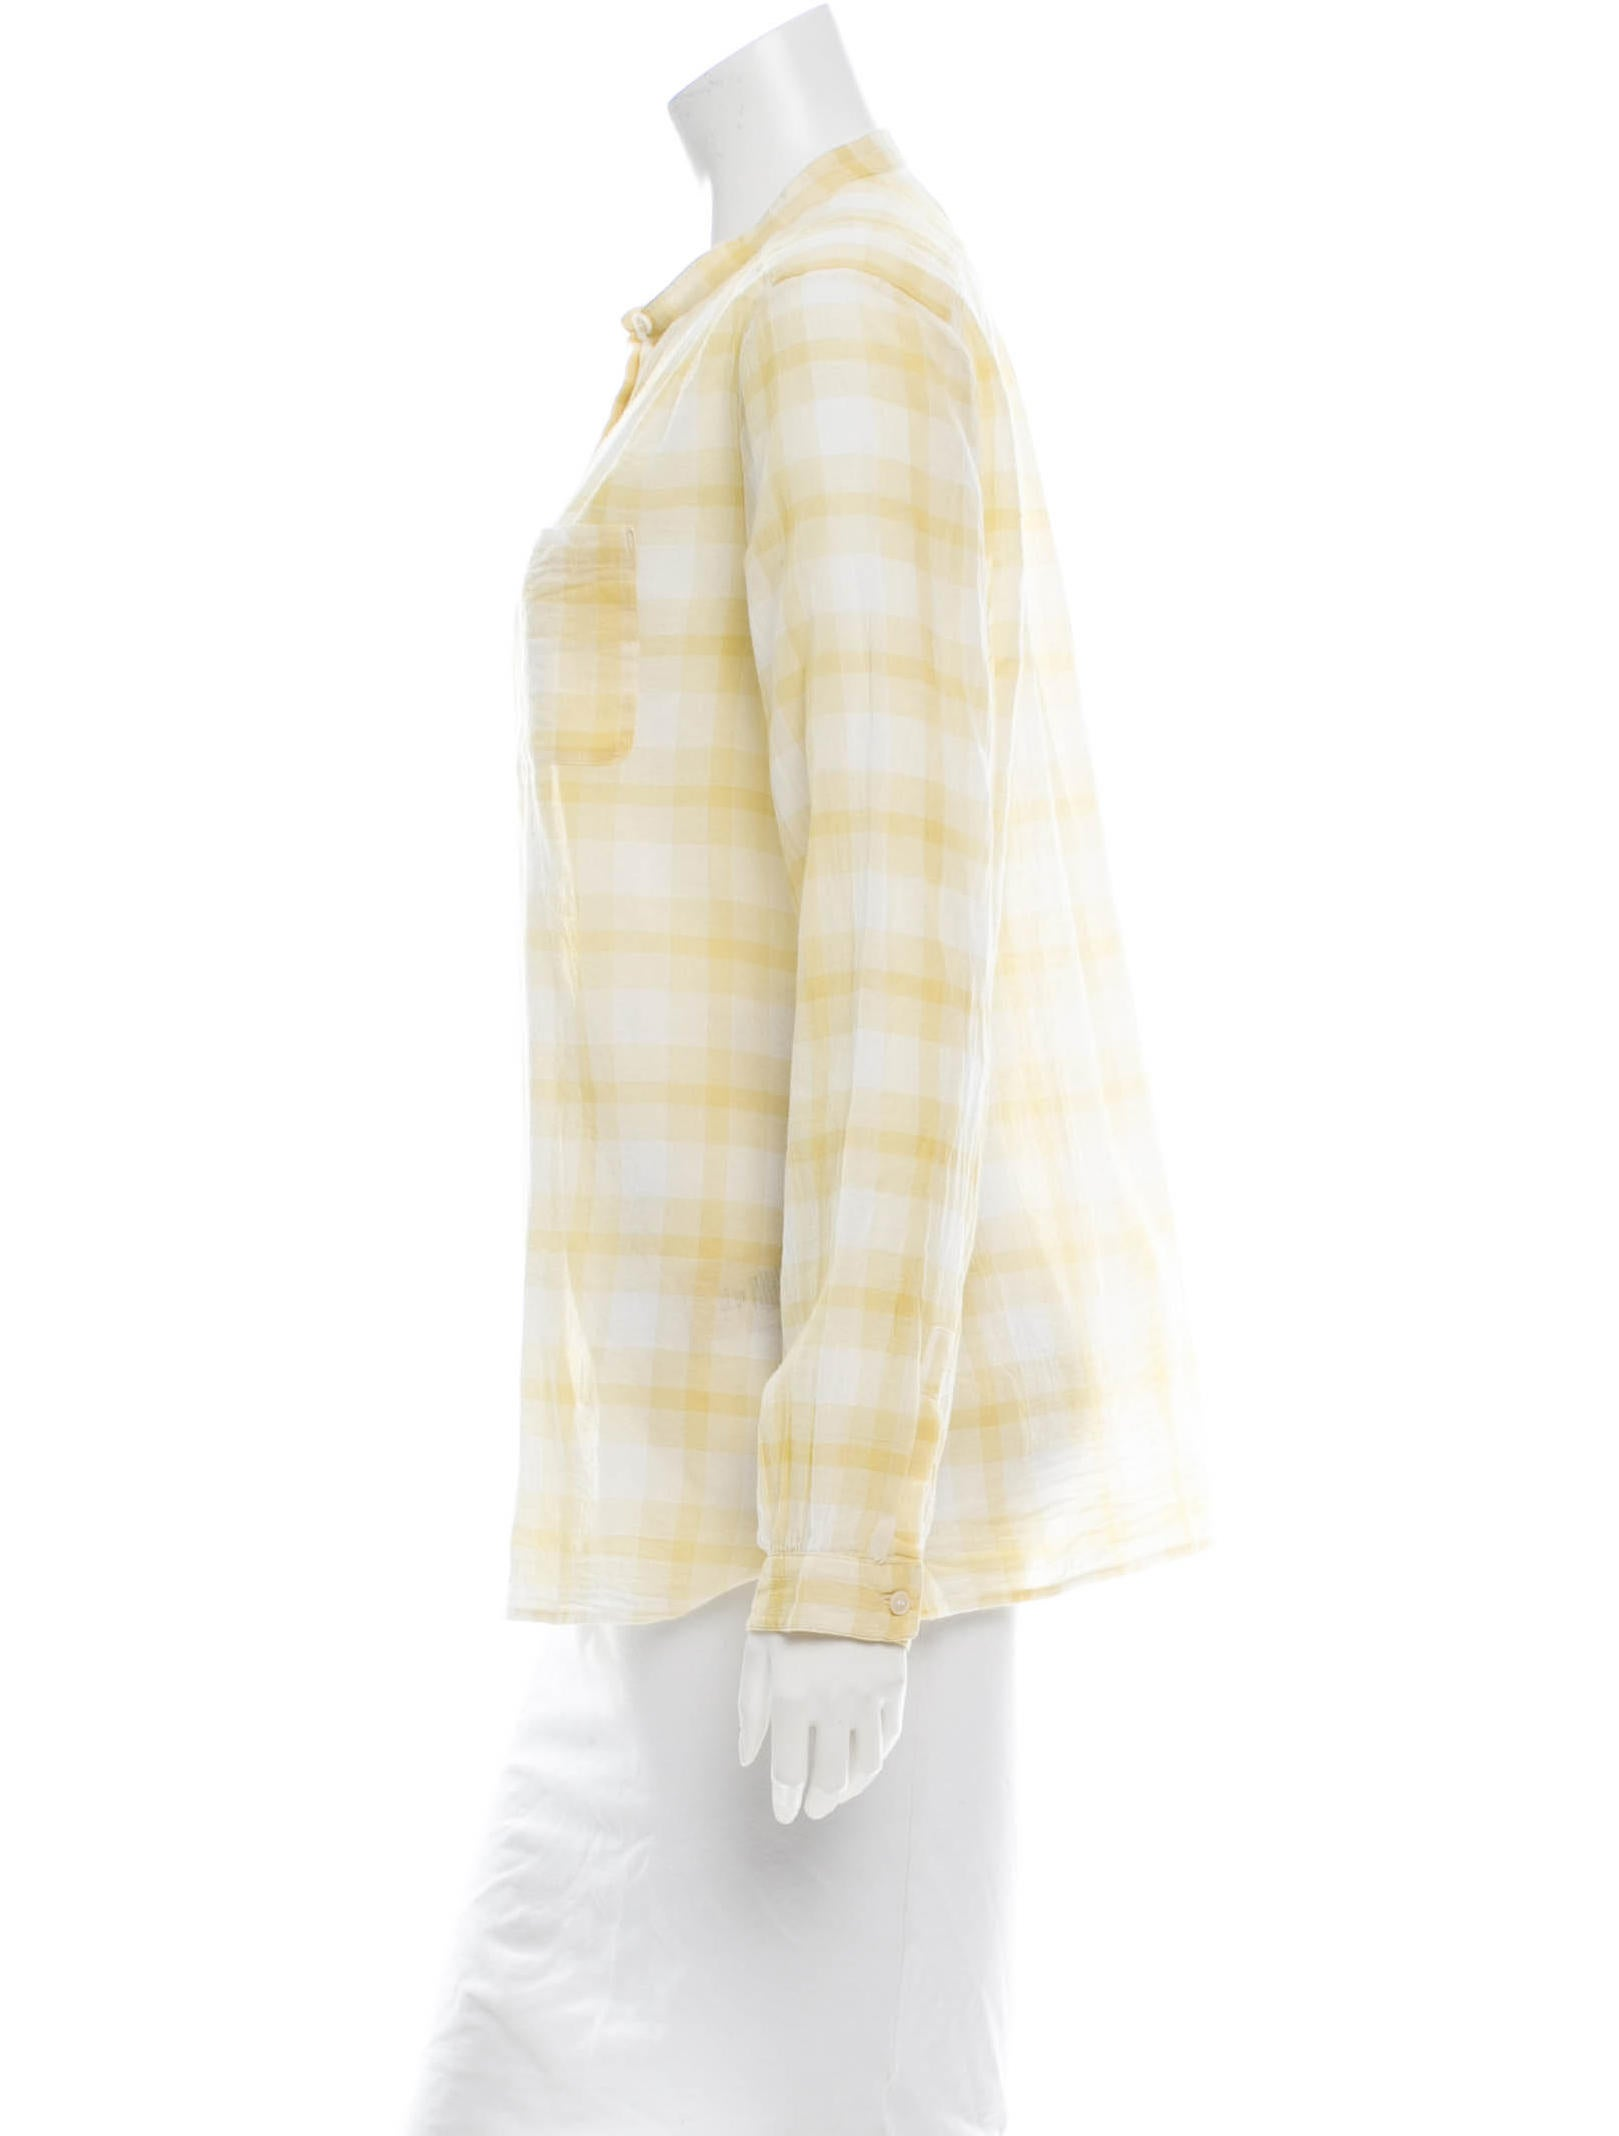 Burberry brit plaid top clothing bbr22116 the realreal for Burberry brit plaid shirt